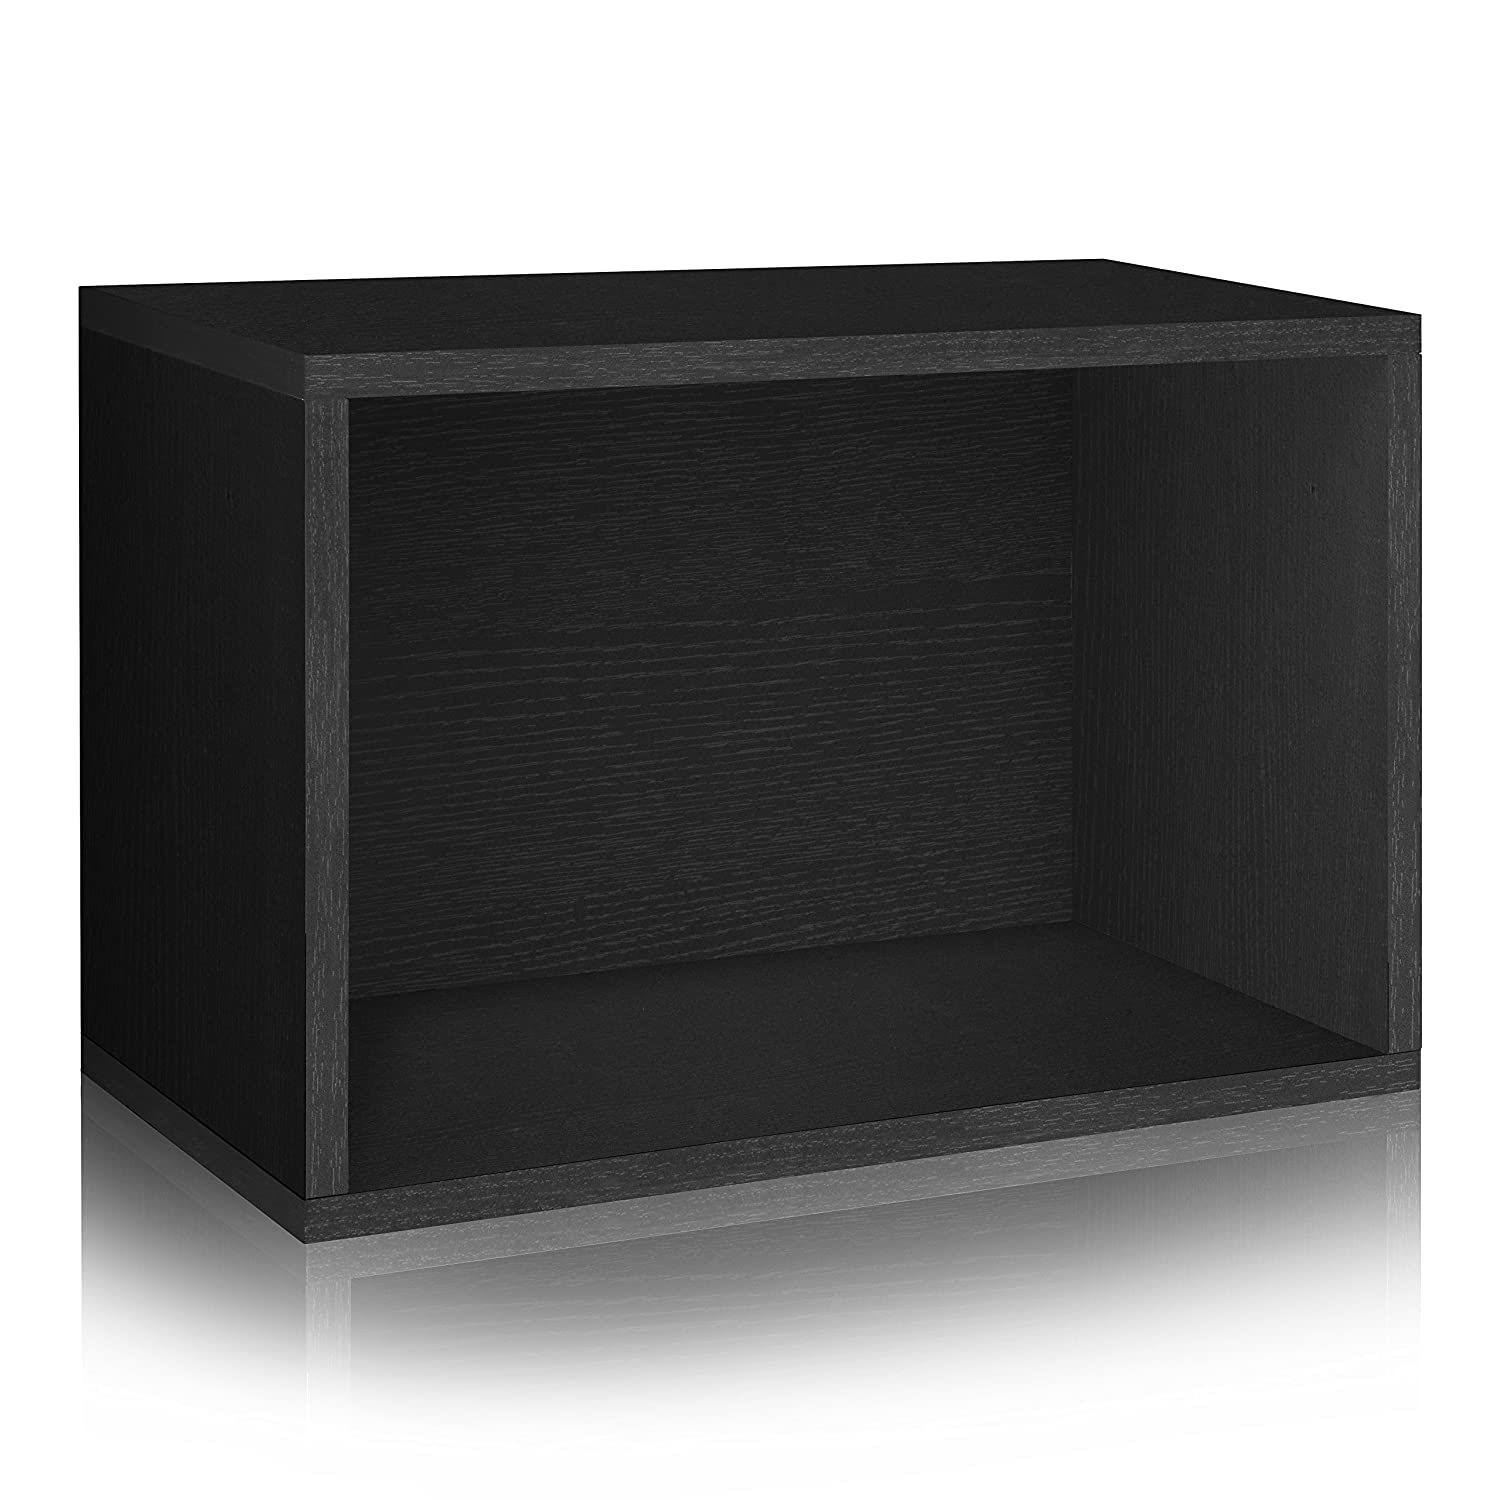 Way Basics Eco Stackable Bookcase Shelving and Shoe Rack, Black Wood Grain(Tool-Free Assembly and Uniquely Crafted from Sustainable Non Toxic zBoard paperboard)